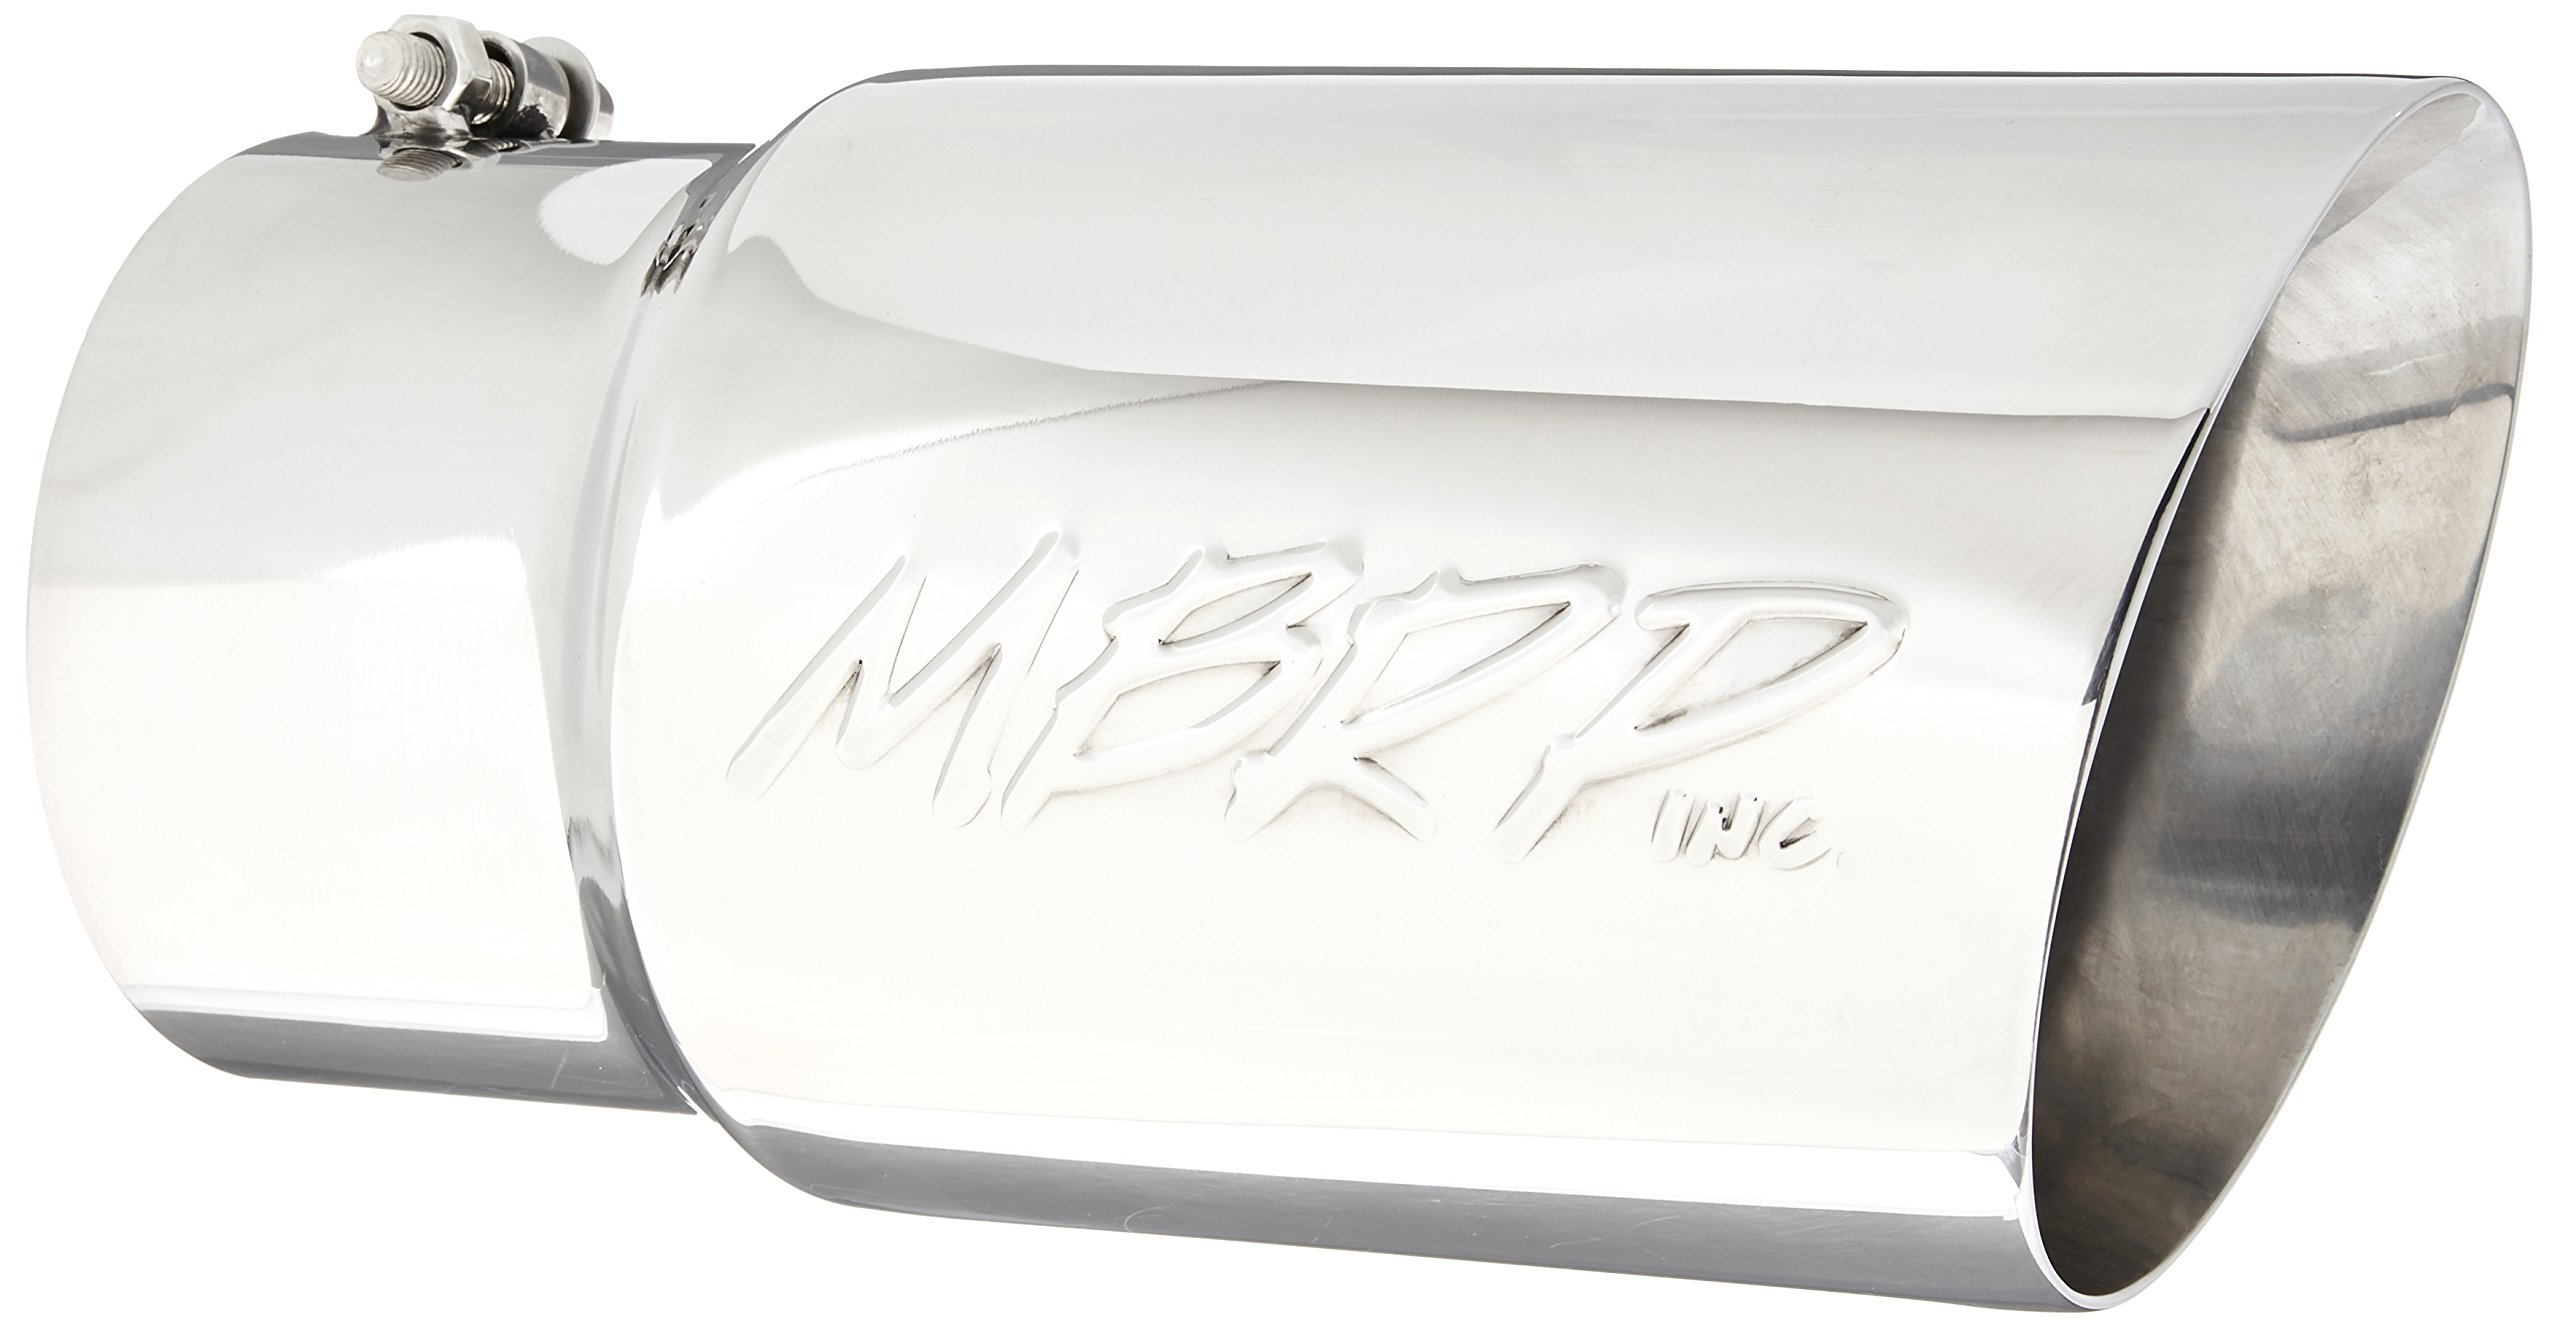 Replaces 68177690, 6817769-0 APDTY 2741989 Side Marker Turn Signal Lamp Fits 1993-1997 Volovo 850 With Dual Bulb Headlight Only